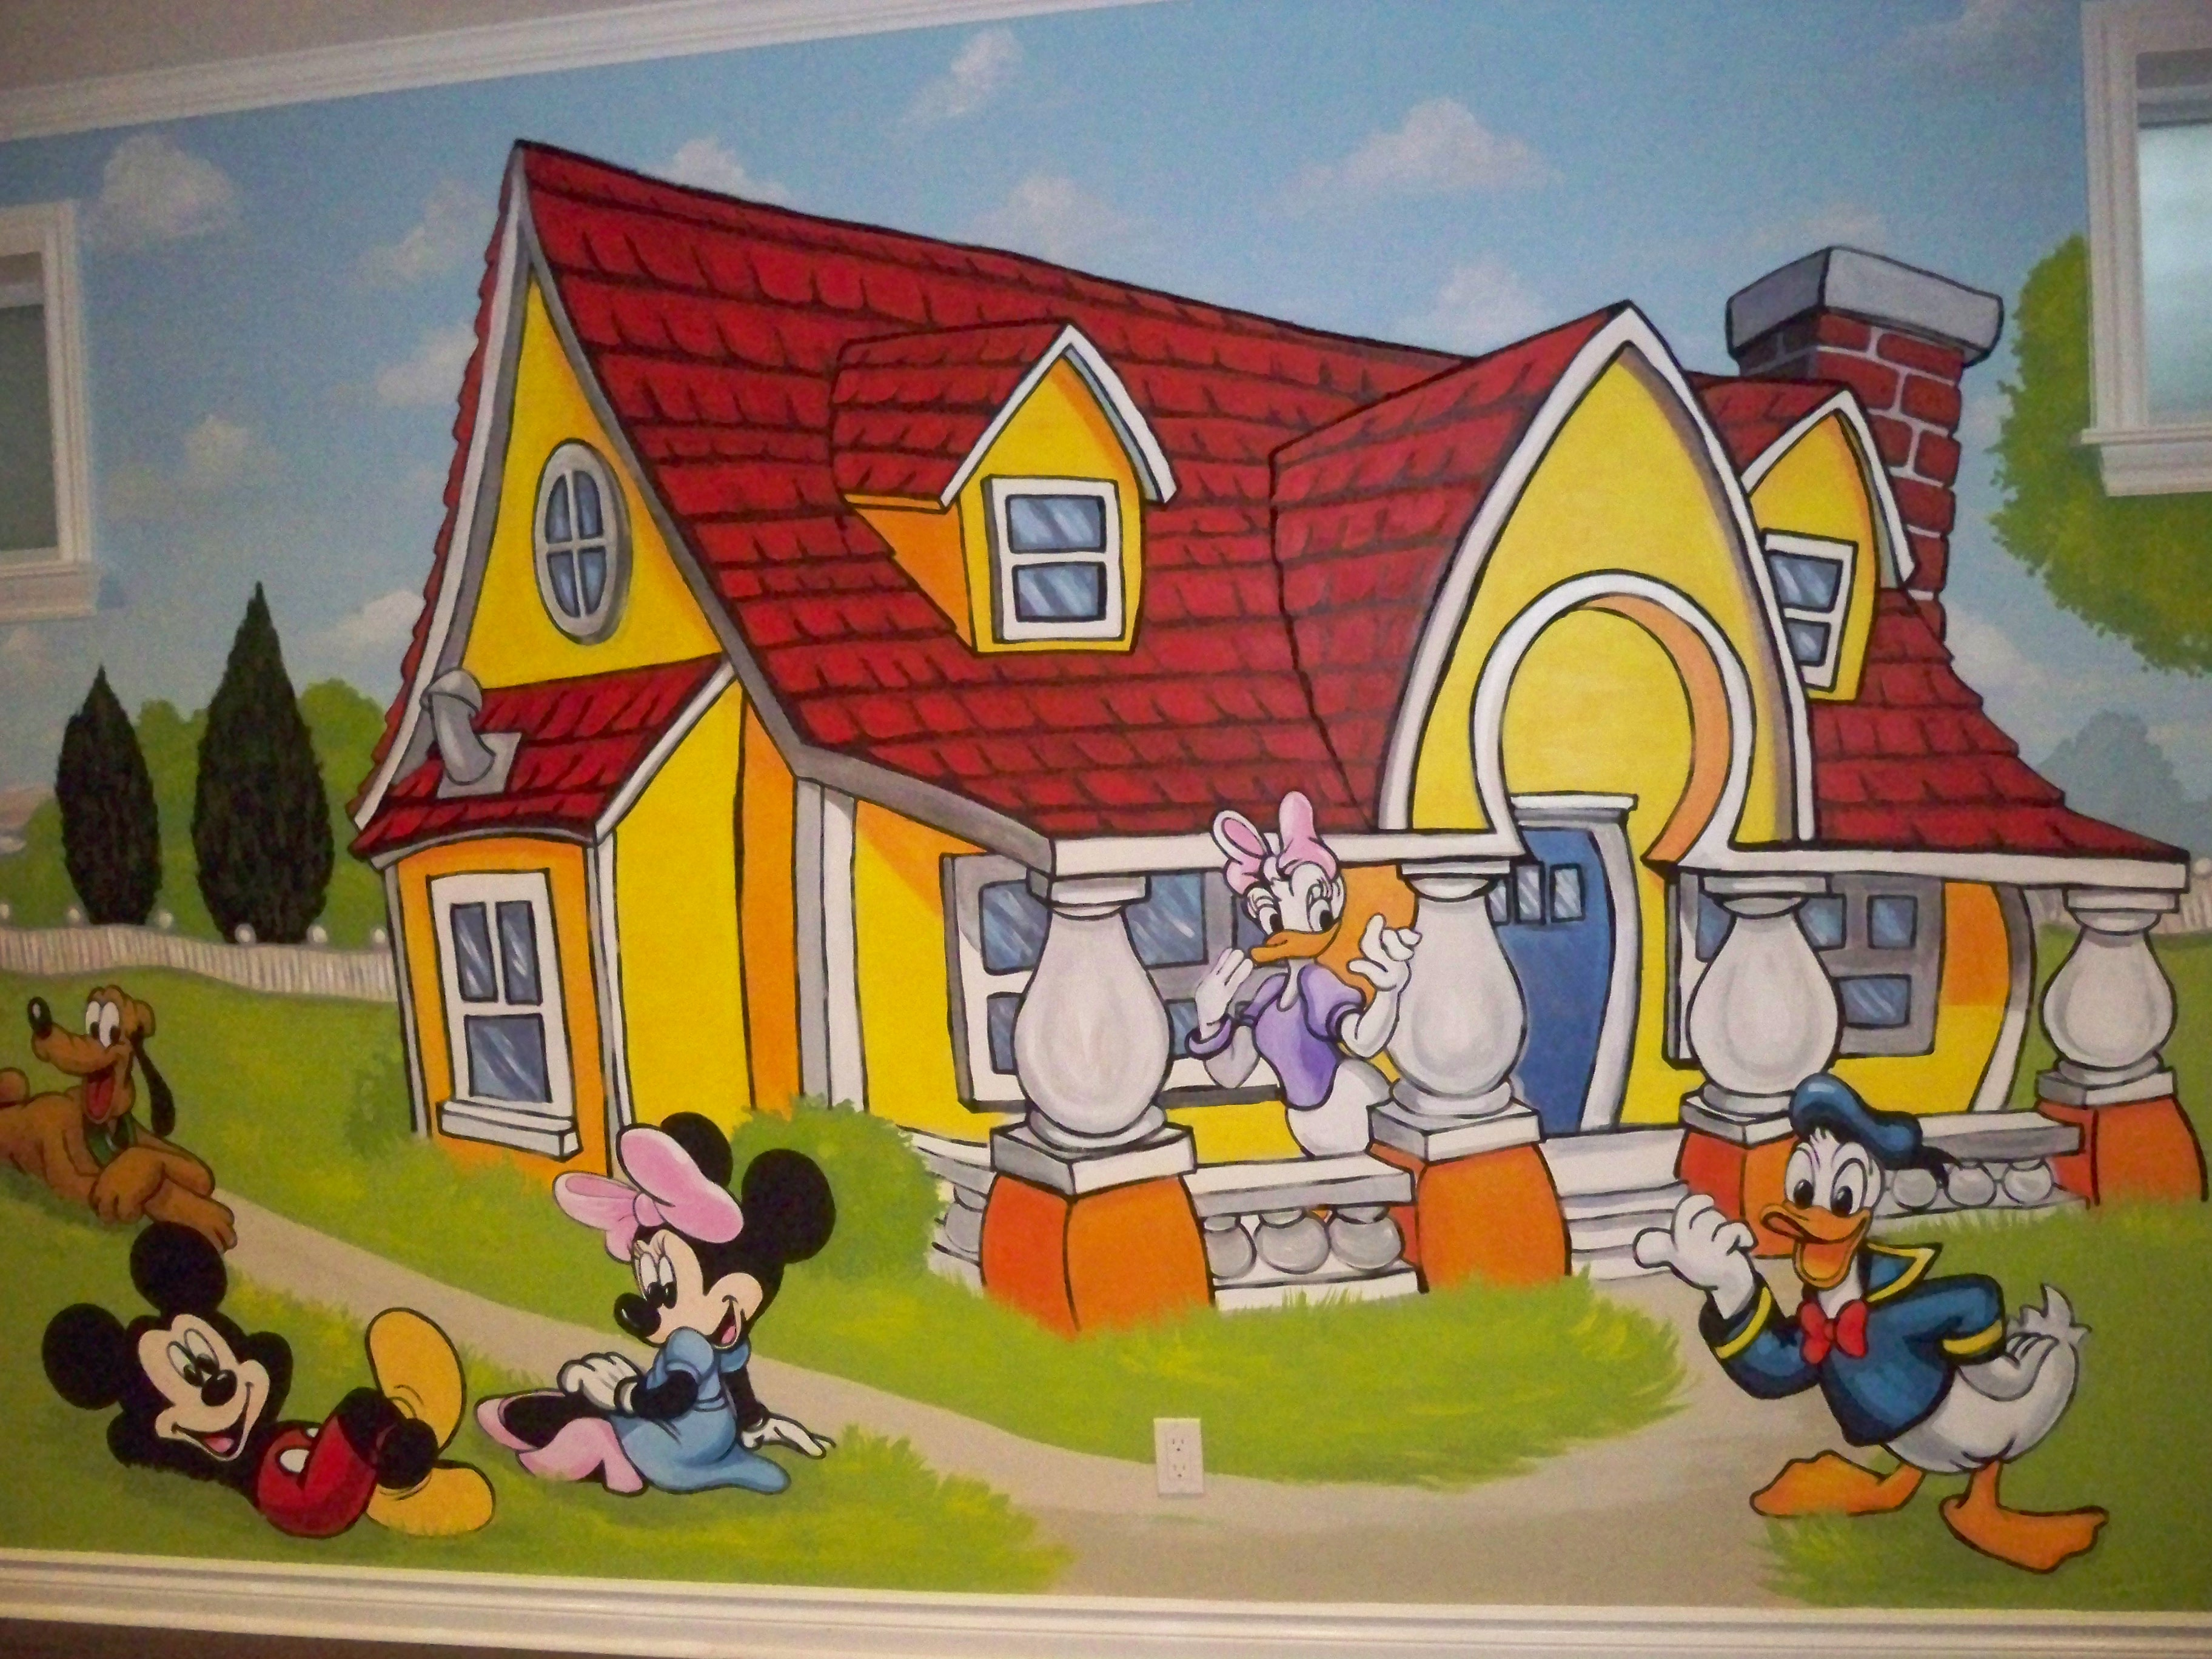 Murals By Marg Mickey Playroom Mural 6.JPG